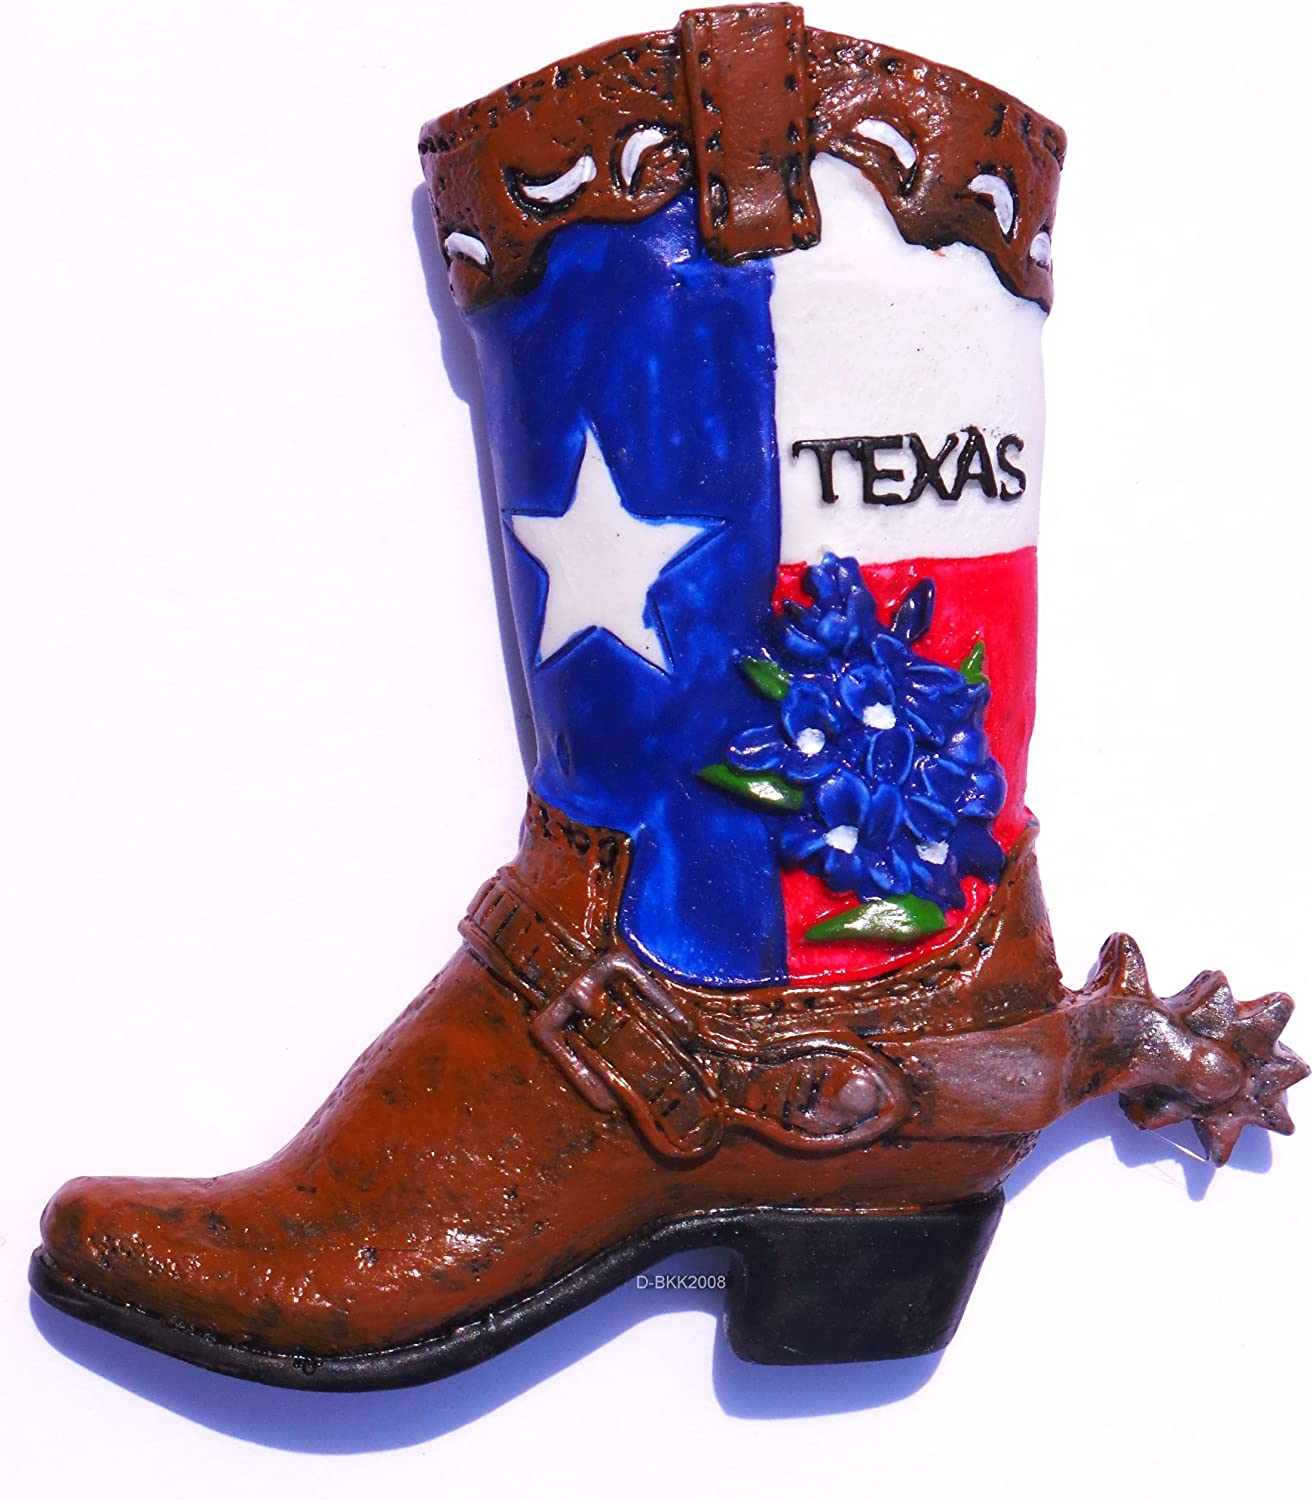 Texas Cowboy Boot United States, Souvenir, High Quality Resin 3d Fridge Magnet